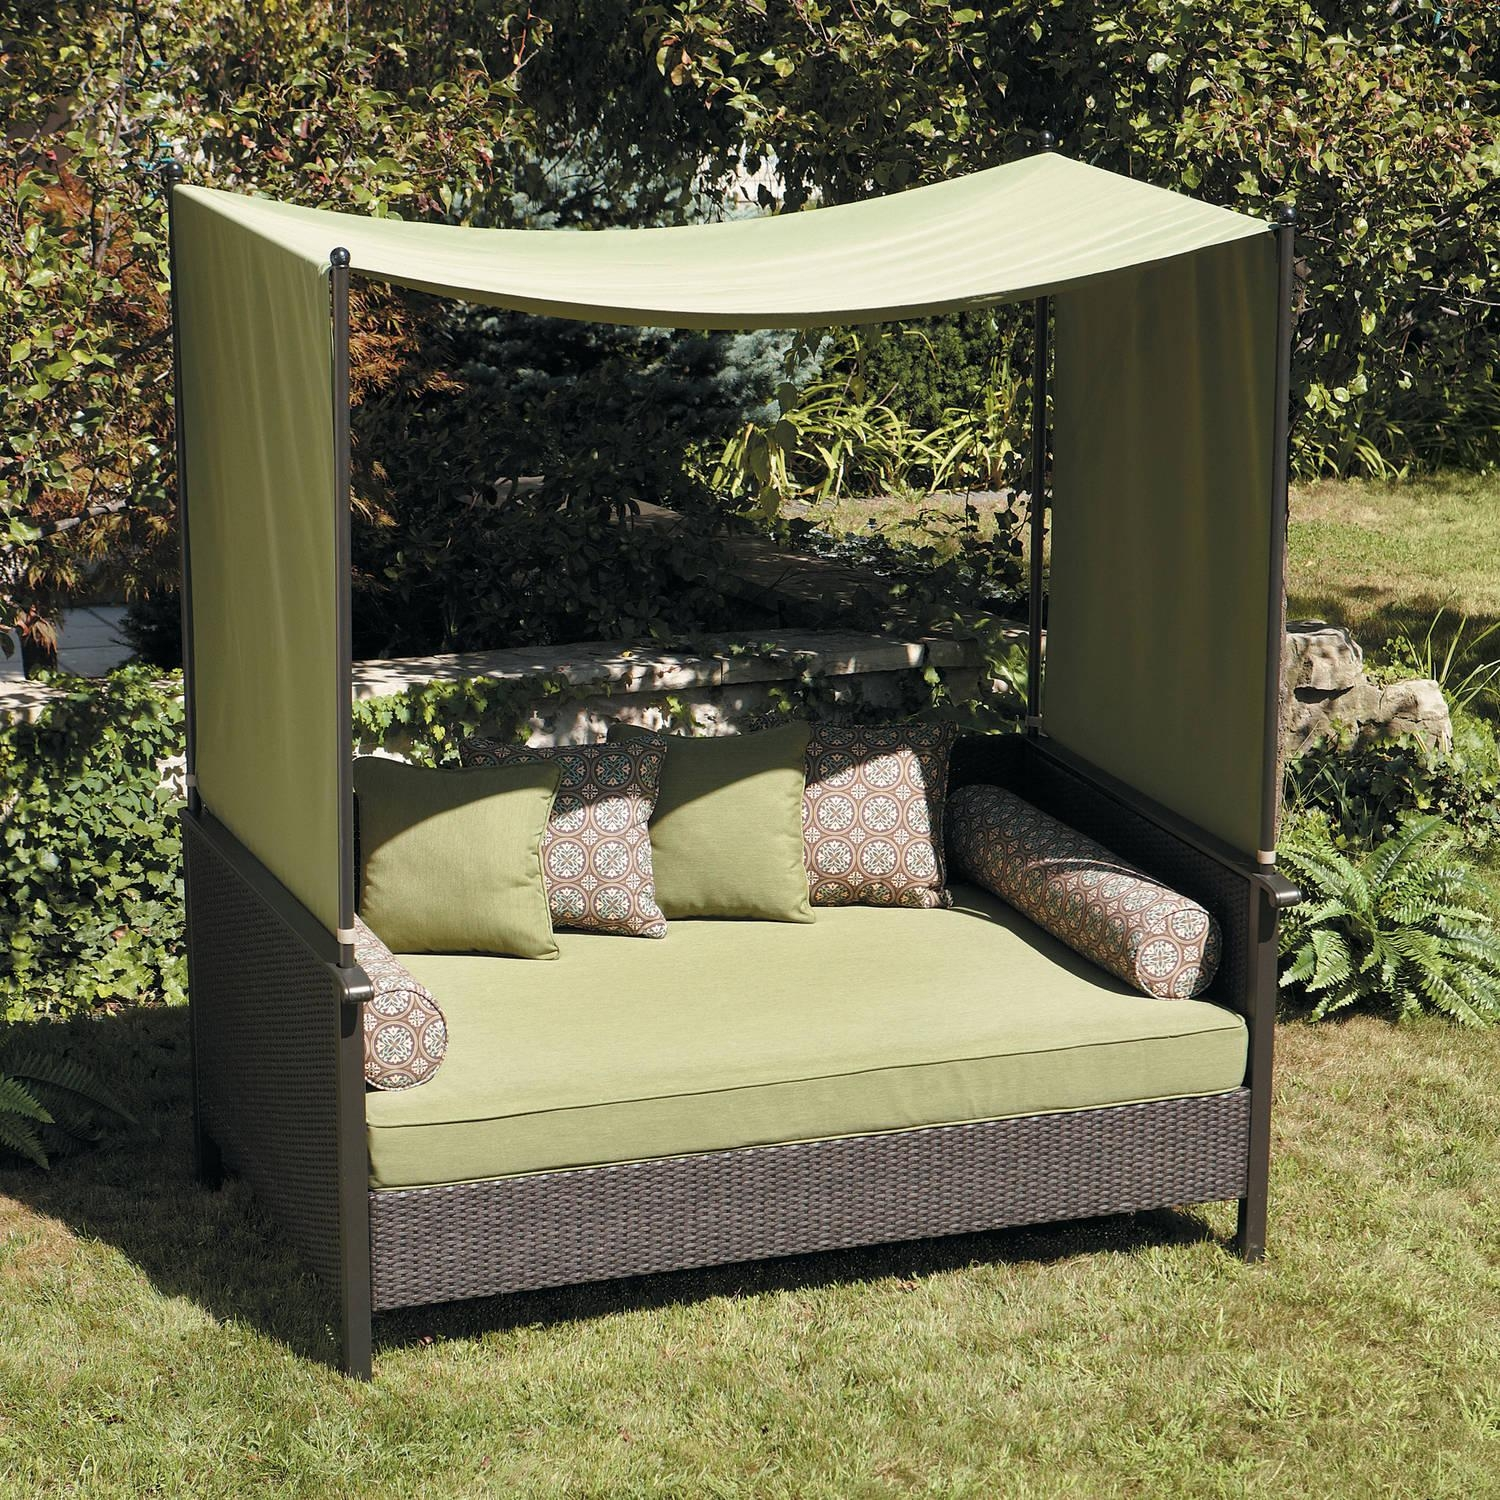 Outdoor Chair With Canopy 20 Photos Outdoor Sofas With Canopy Sofa Ideas